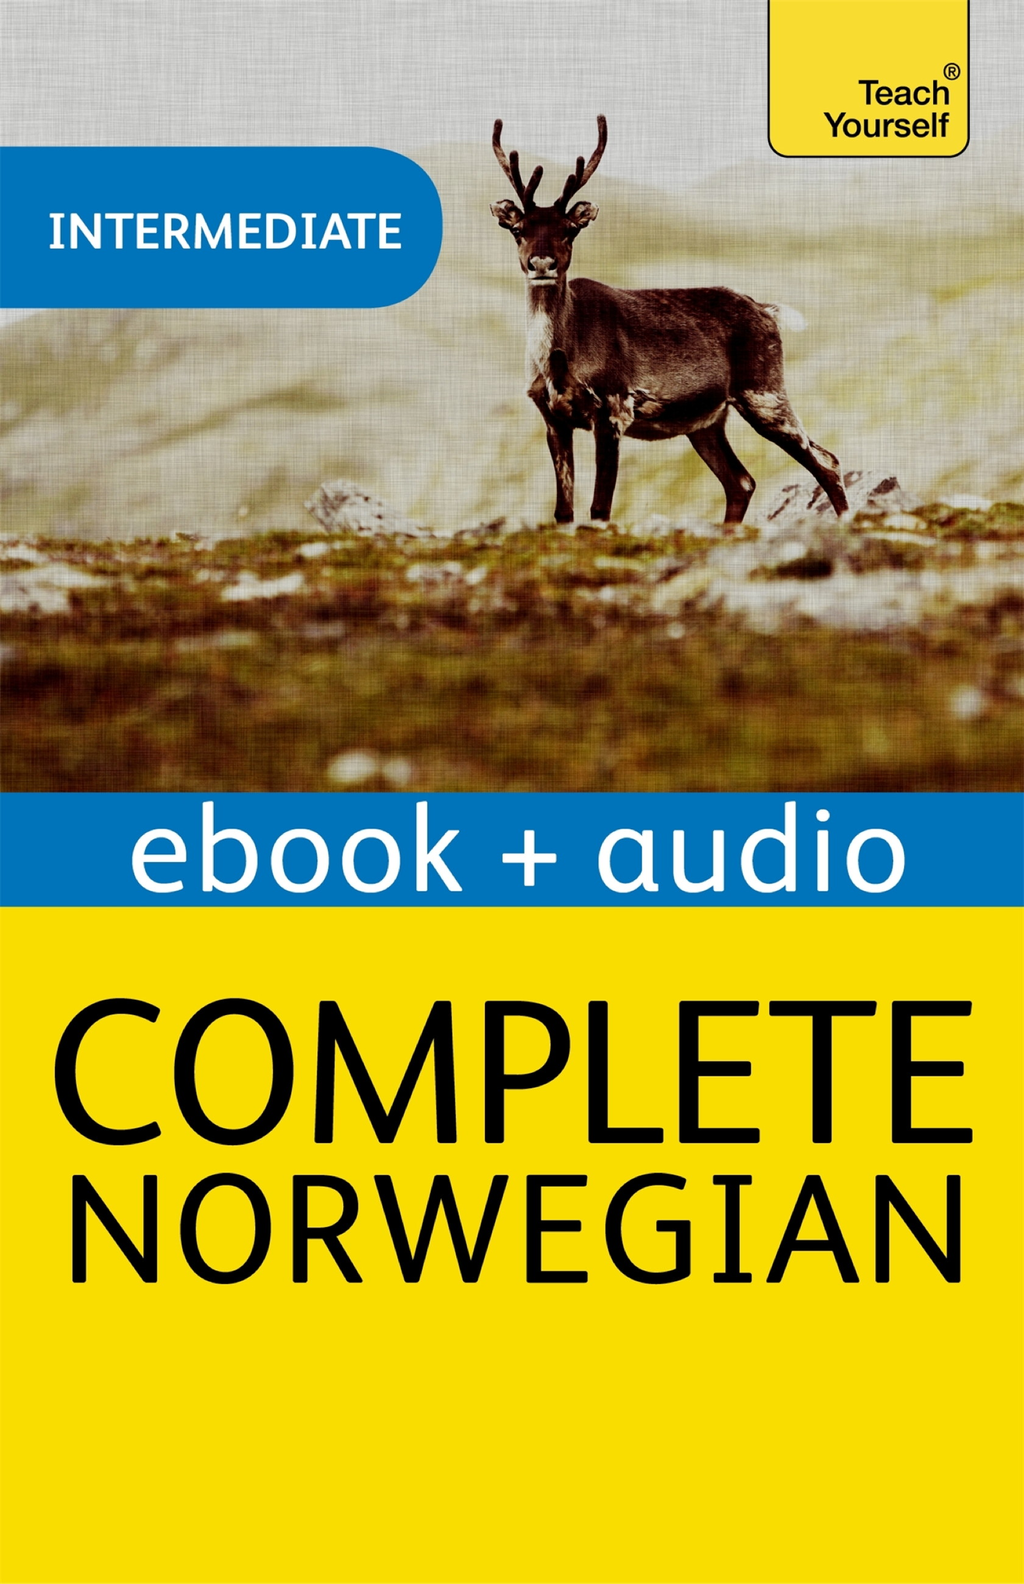 Complete Norwegian: Teach Yourself Enhanced Edition